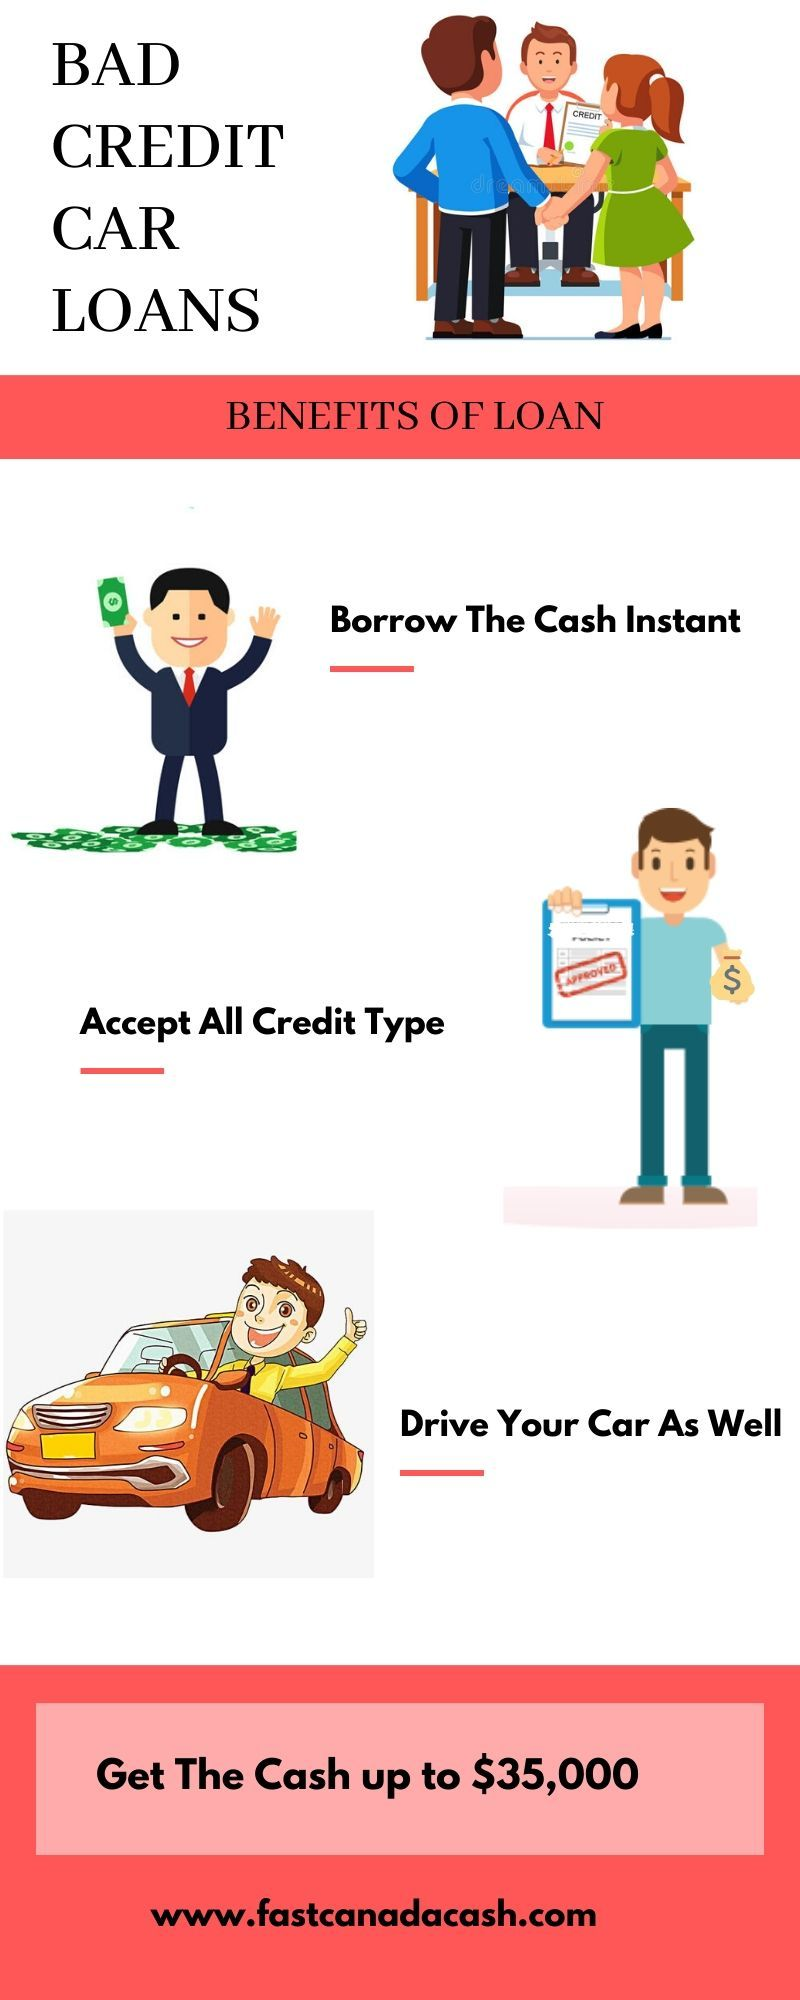 Bad Credit Car Loan Calgary Get Fast Approval With Low